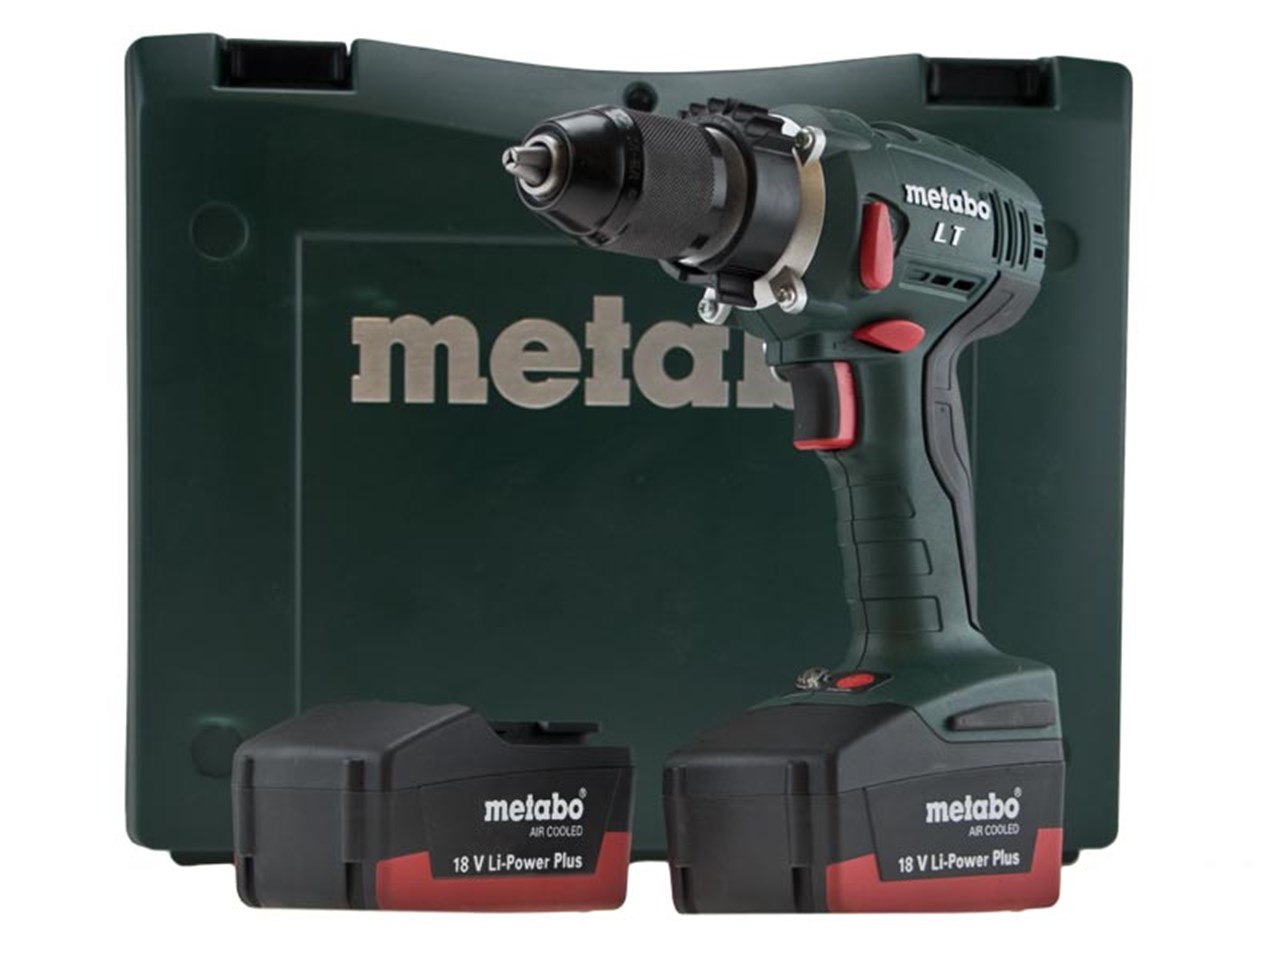 metabo bs18 lt 18v power plus impuls drill driver kit 2 x 2 6ah. Black Bedroom Furniture Sets. Home Design Ideas